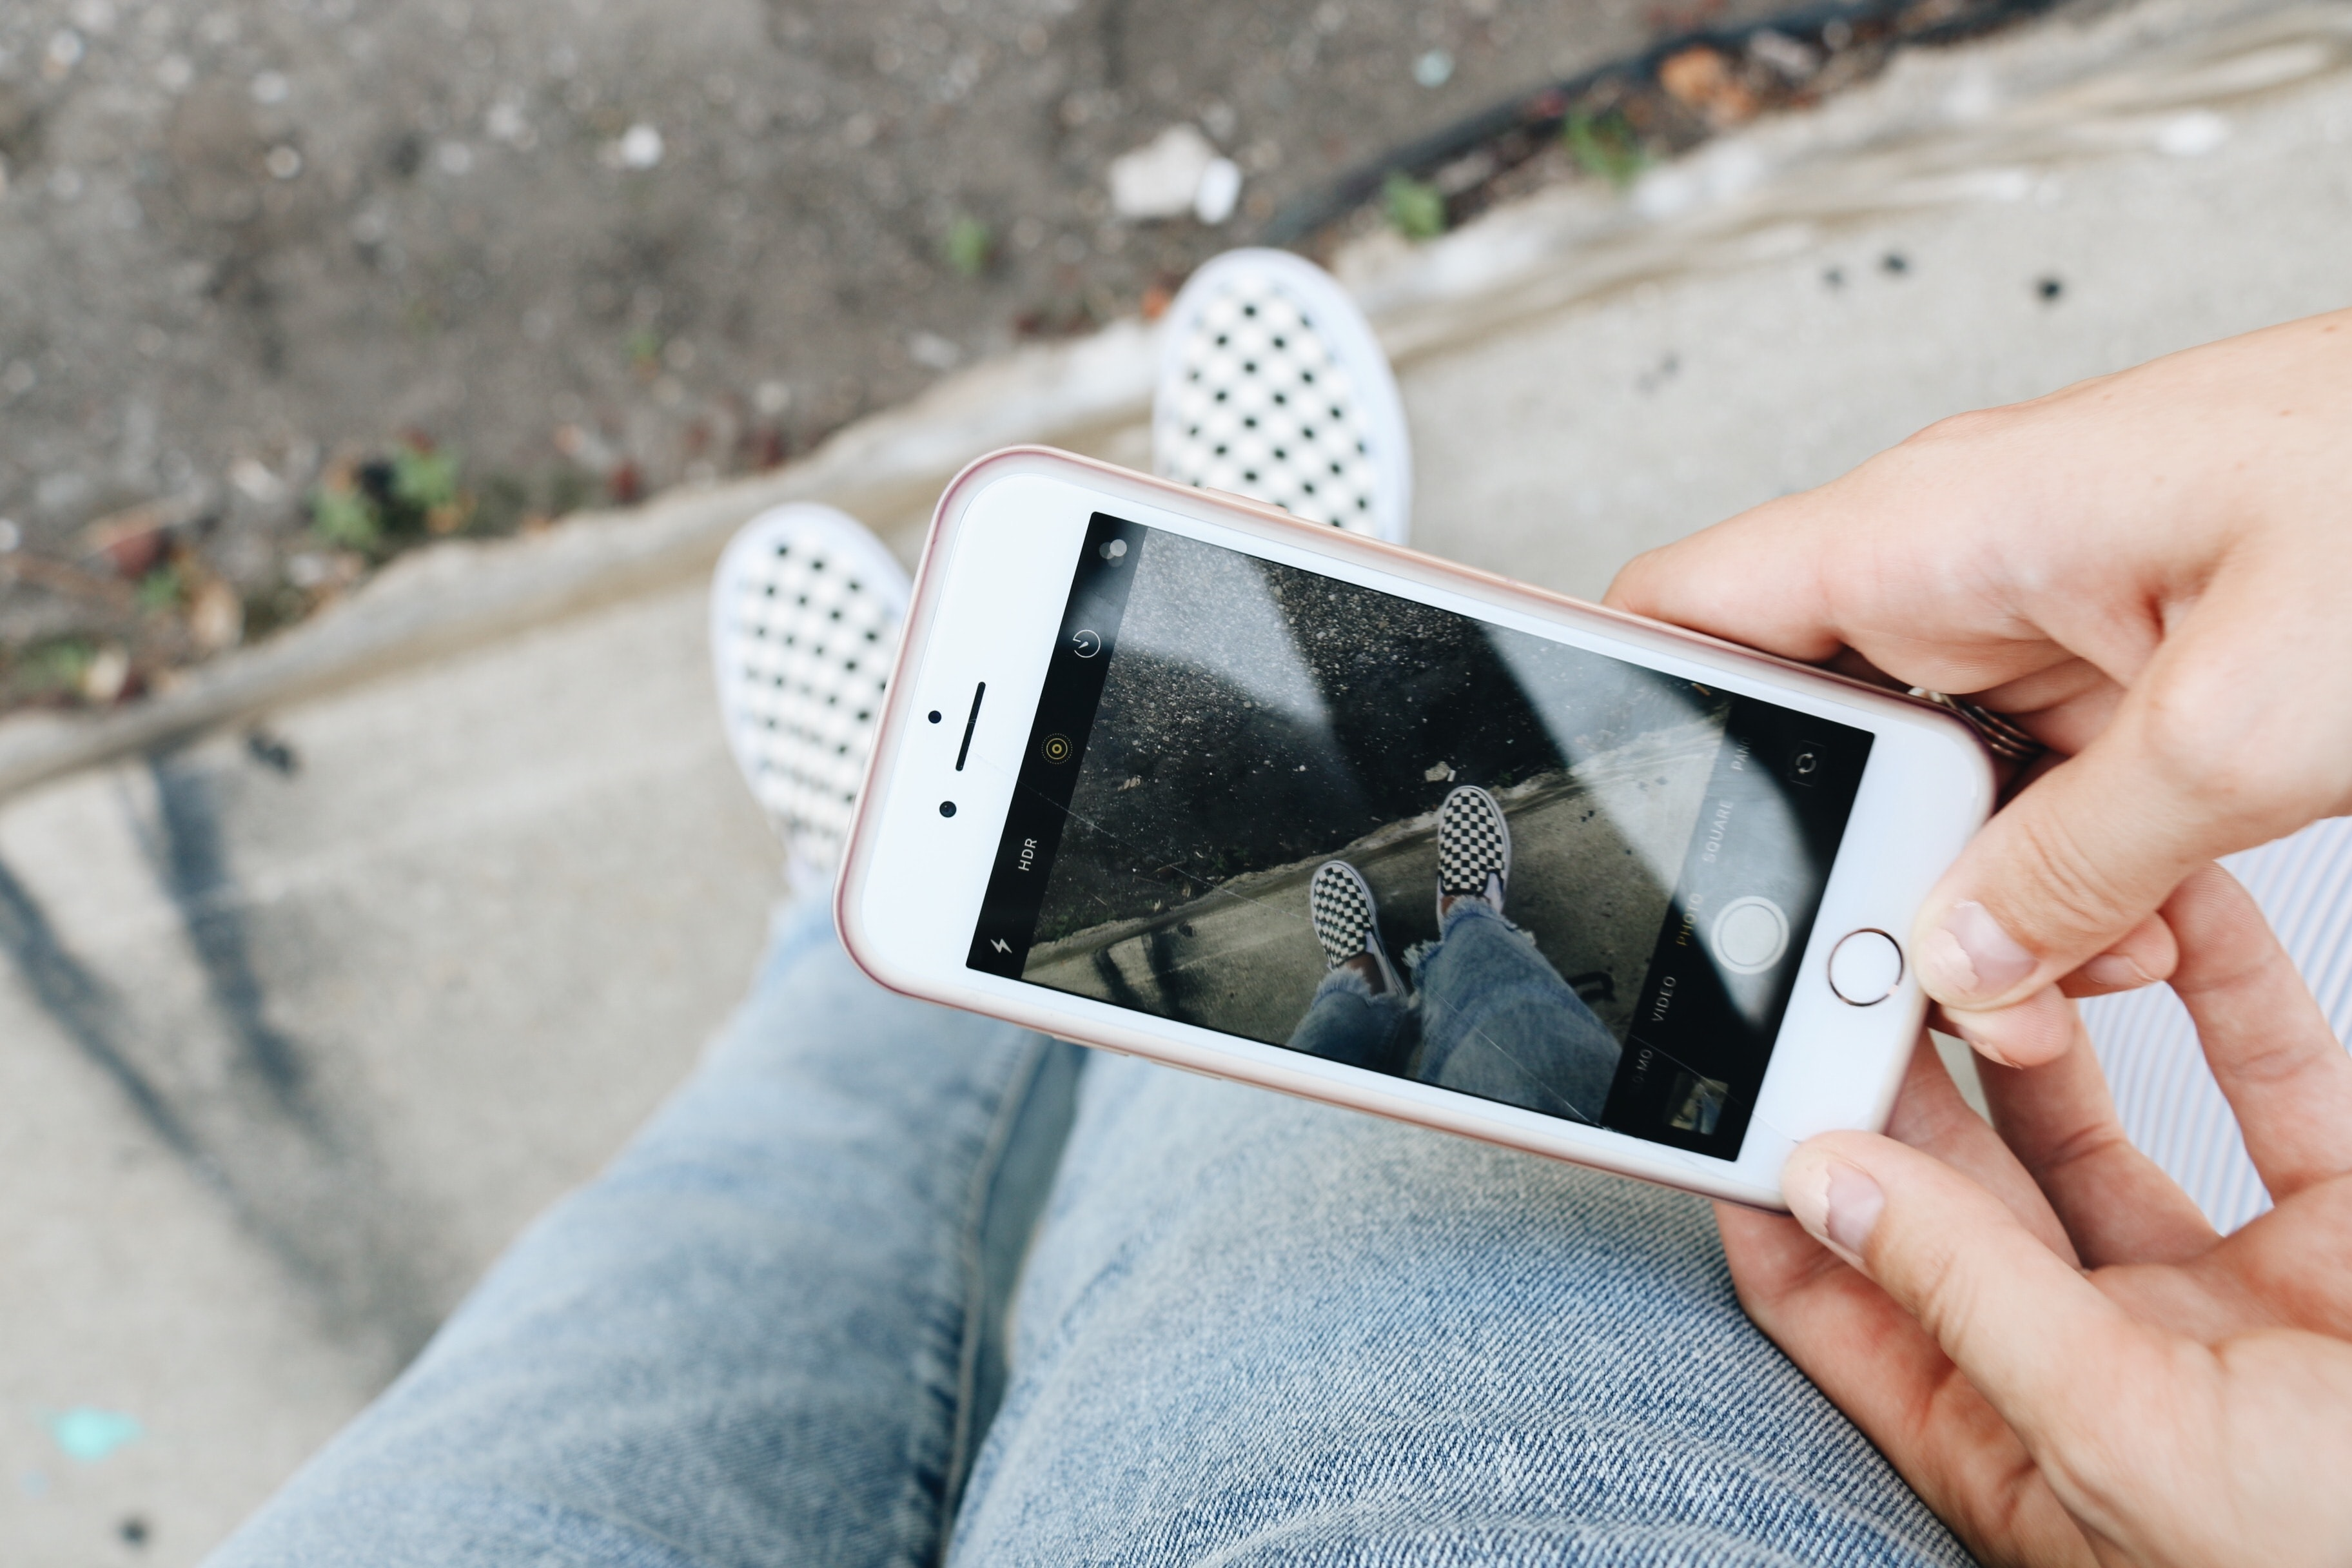 person holding rose gold iPhone 6s capturing pair of white sneakers